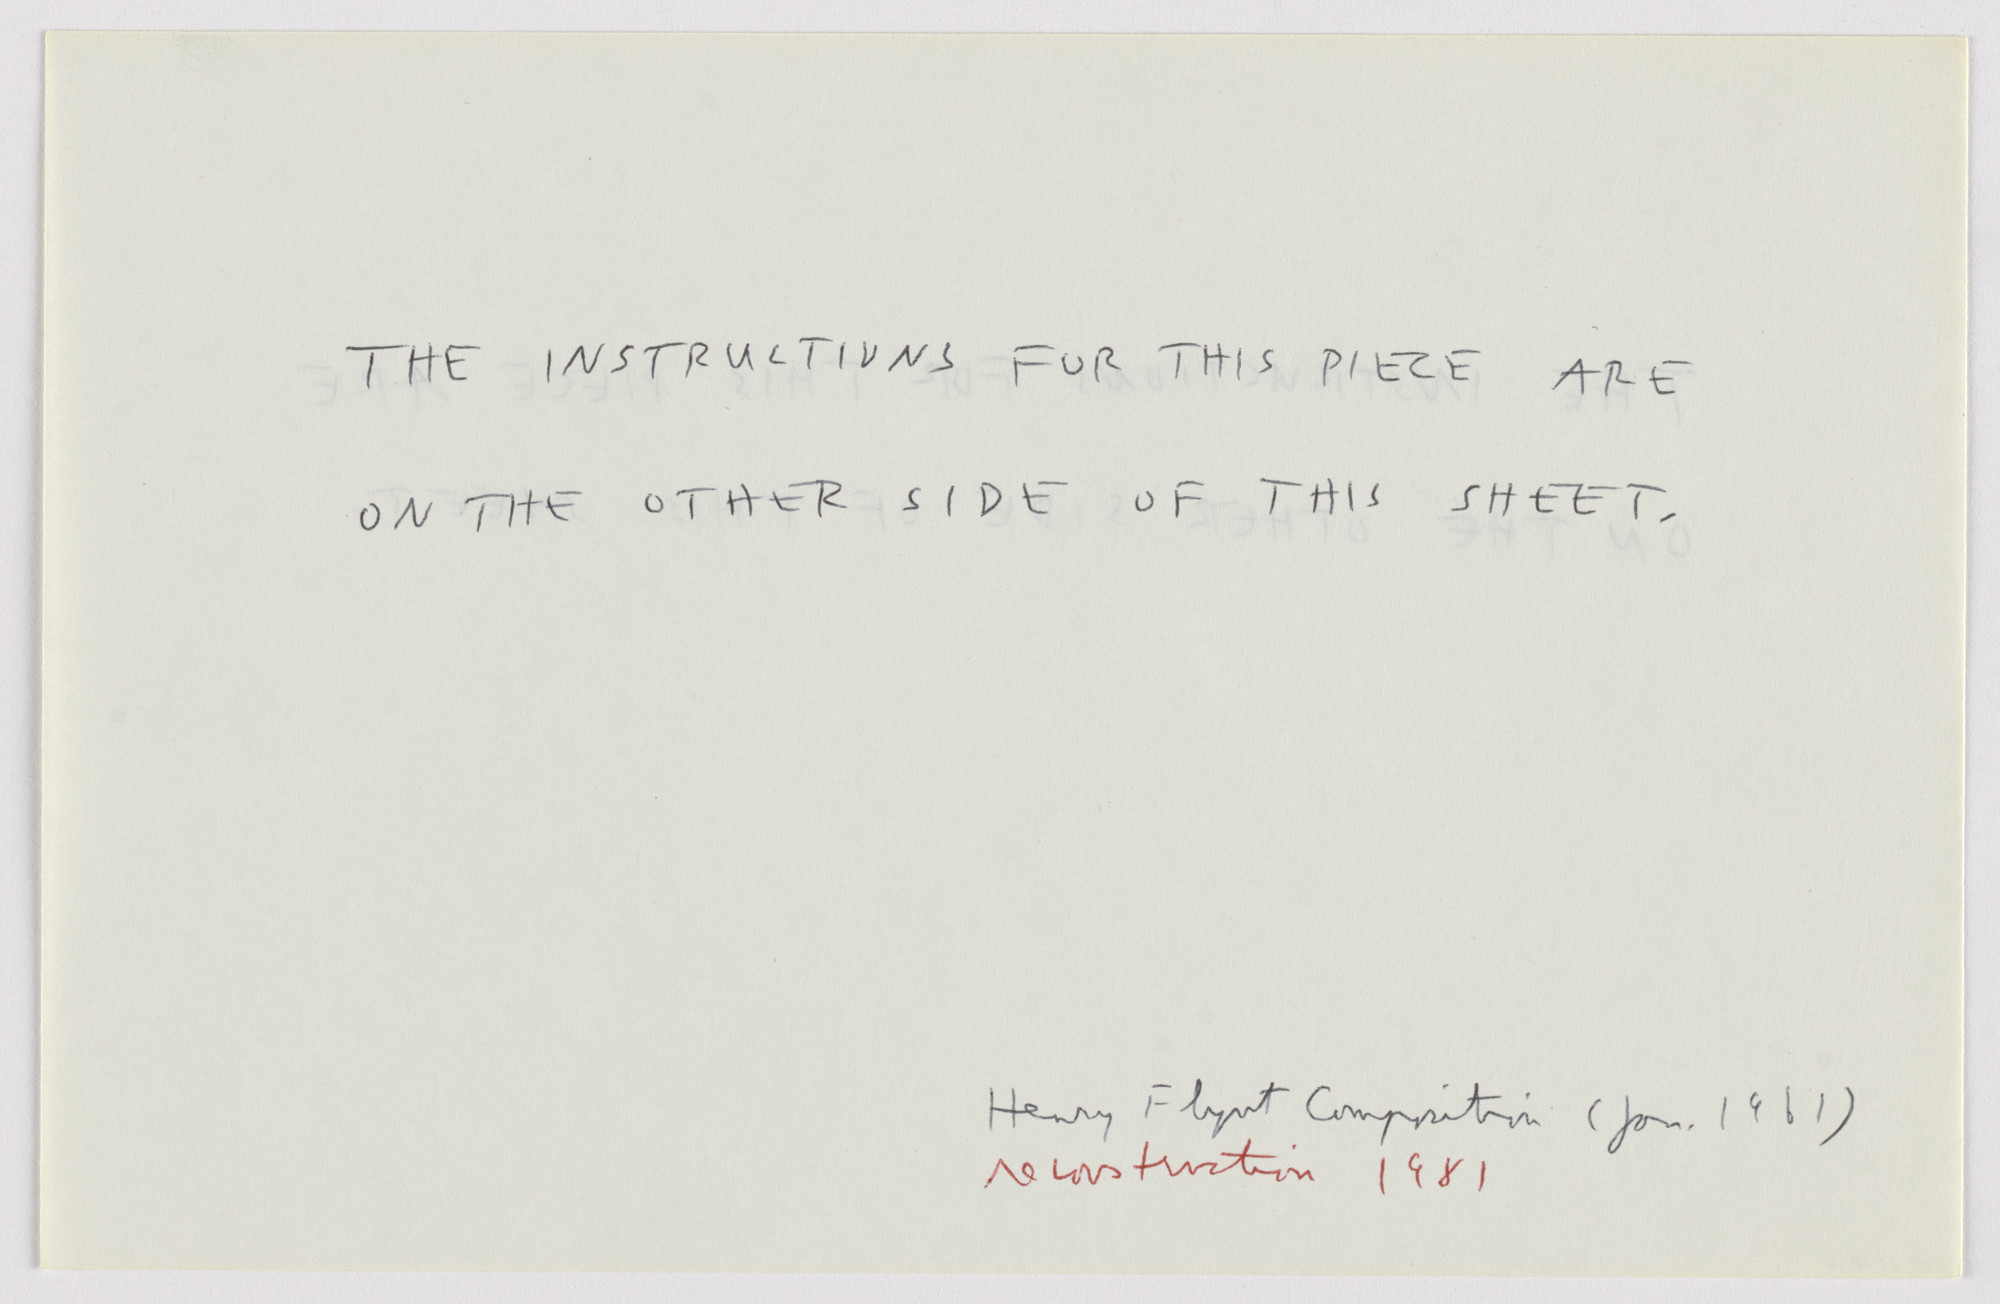 Henry Flynt. The Instructions for This Piece Are on the Other Side of This Sheet. 1961, reconstructed 1981